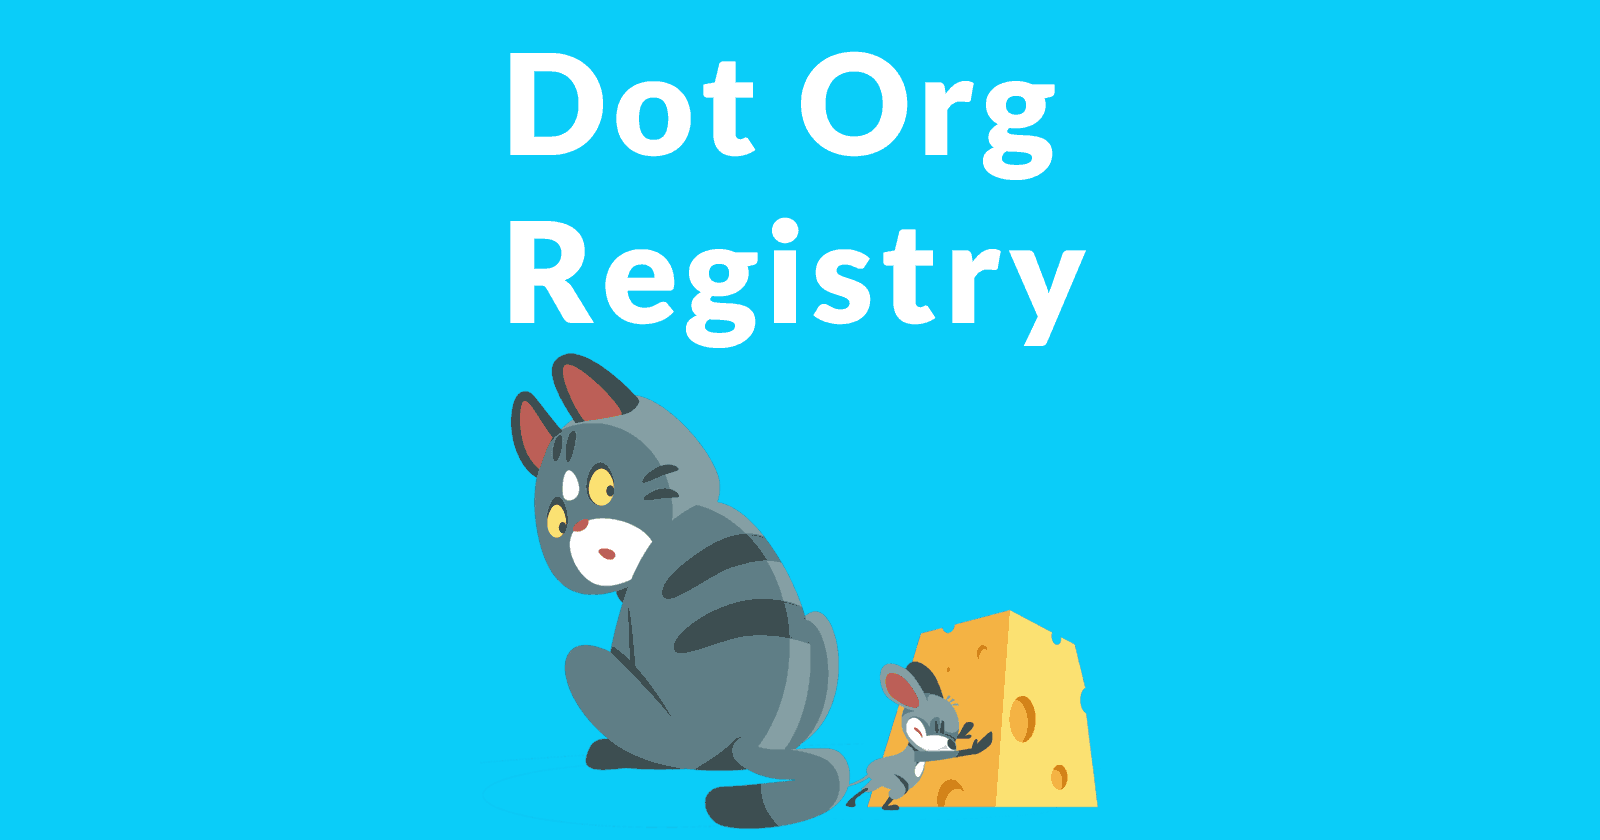 icann-requests-answers-about-sale-of-dot-org-registry-via-@martinibuster